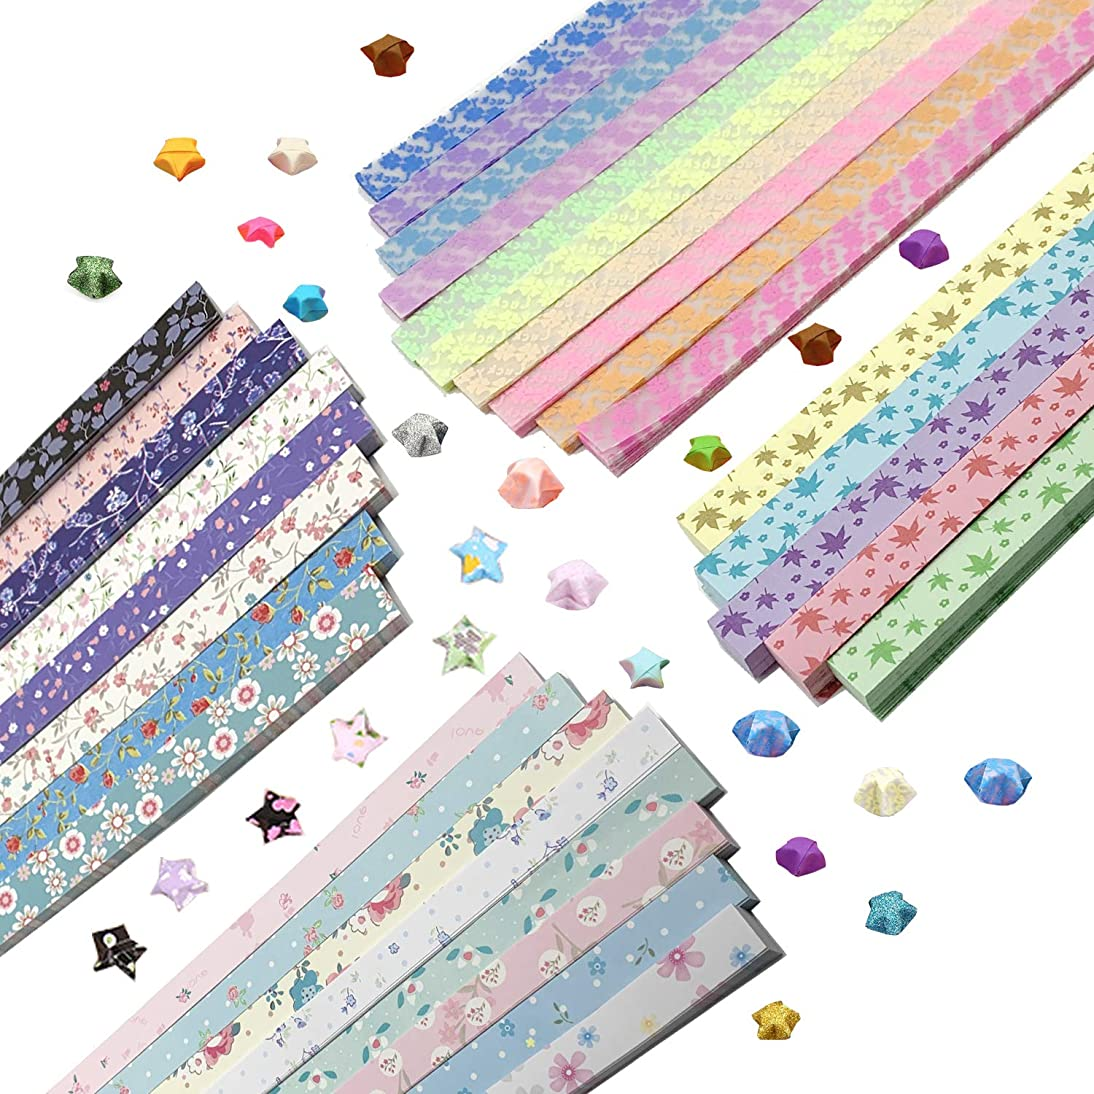 Wartoon Flower Maple Leaf Origami Stars Paper and Luminous Four-Leaf Clover Paper Set, 1820 Sheets